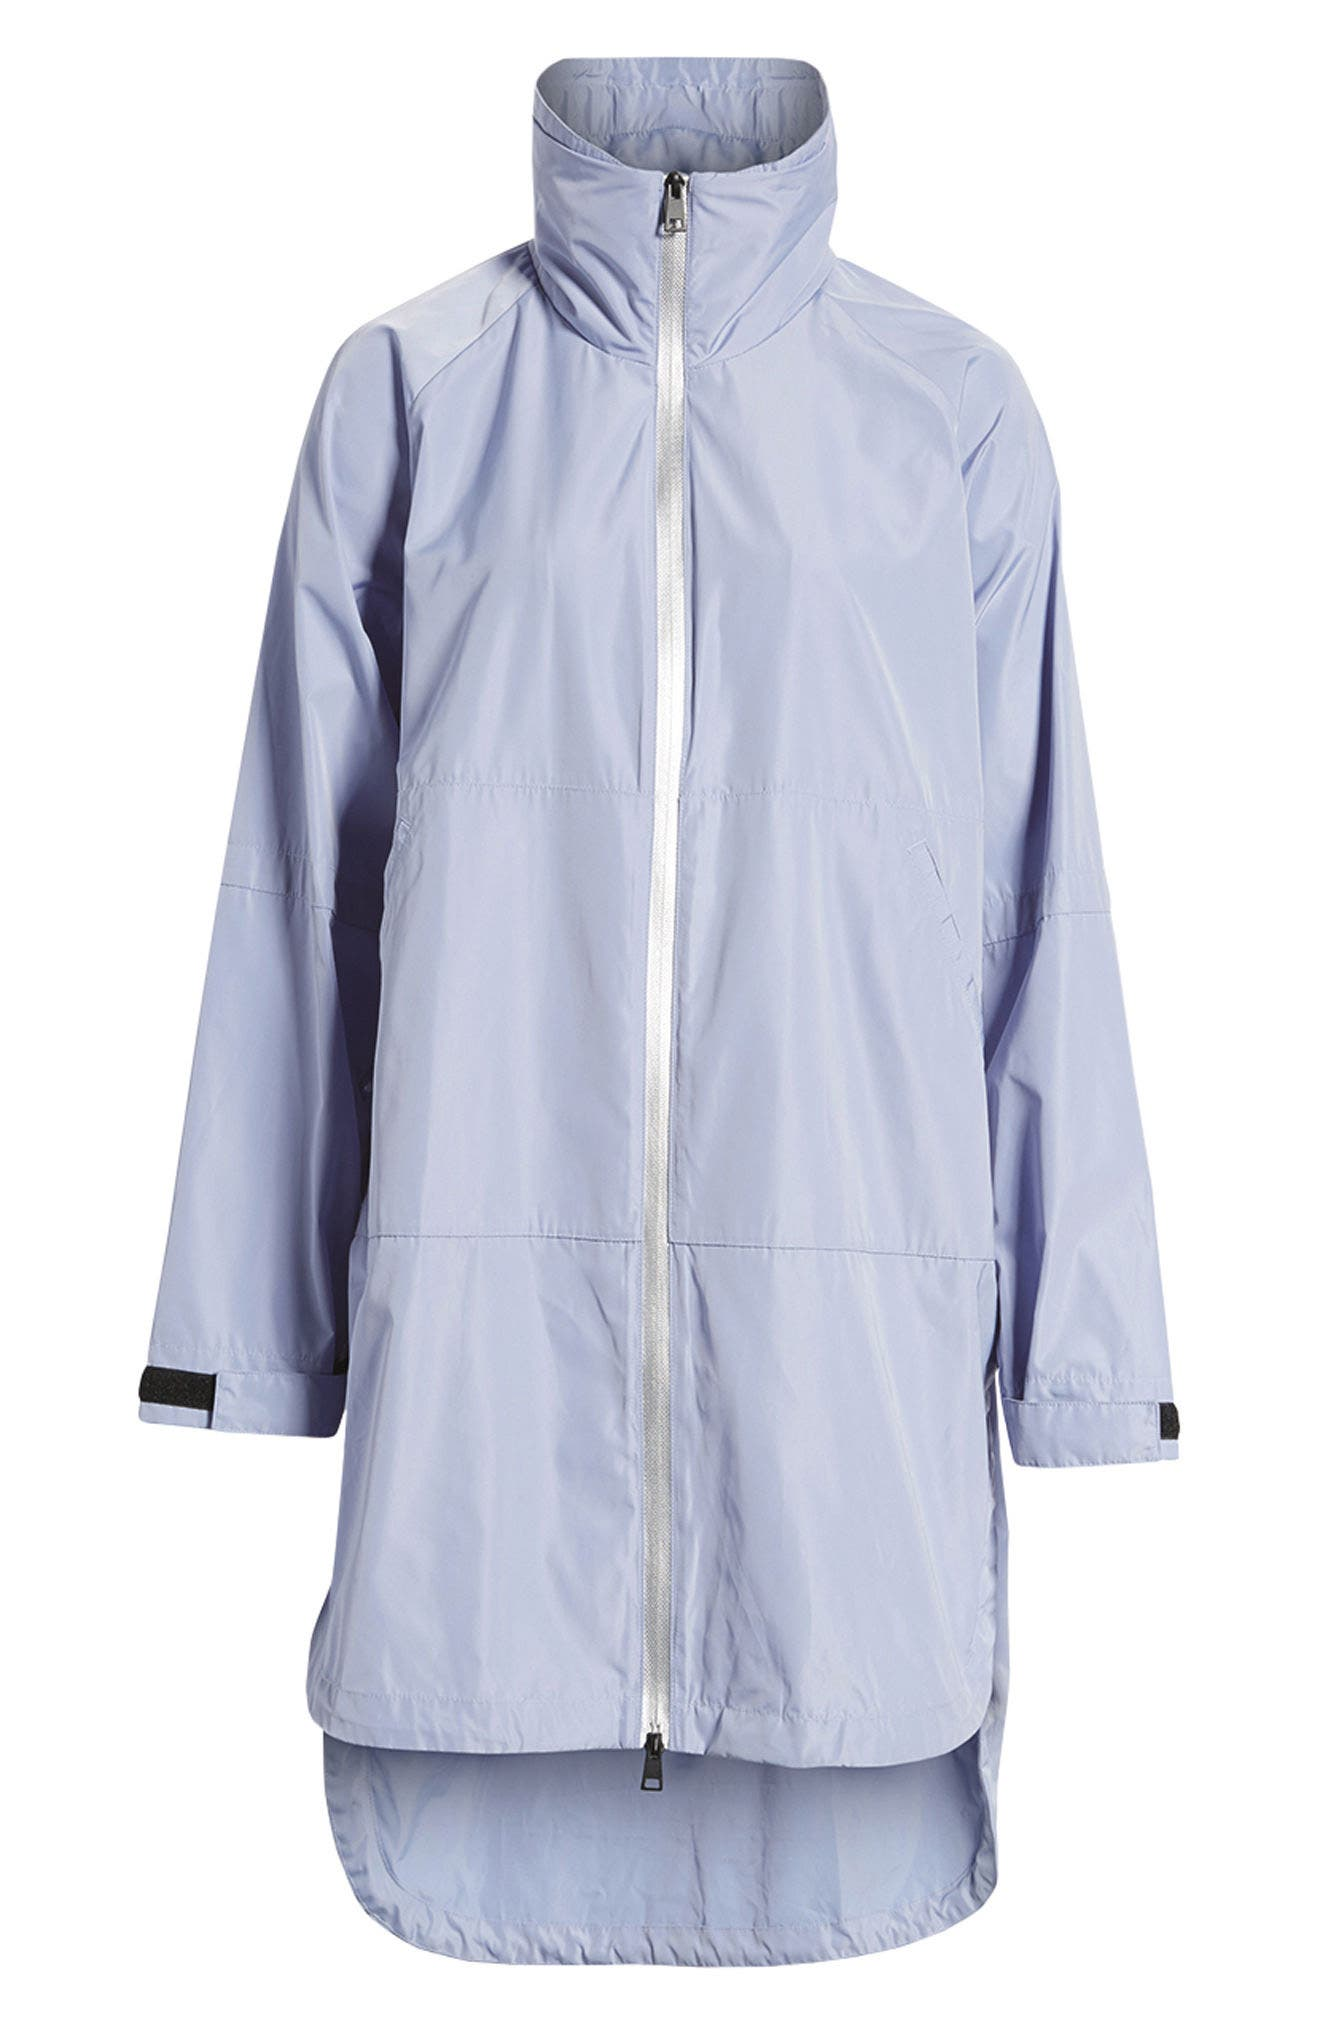 Poly-Luxe Packable Oversize Jacket,                             Alternate thumbnail 7, color,                             020